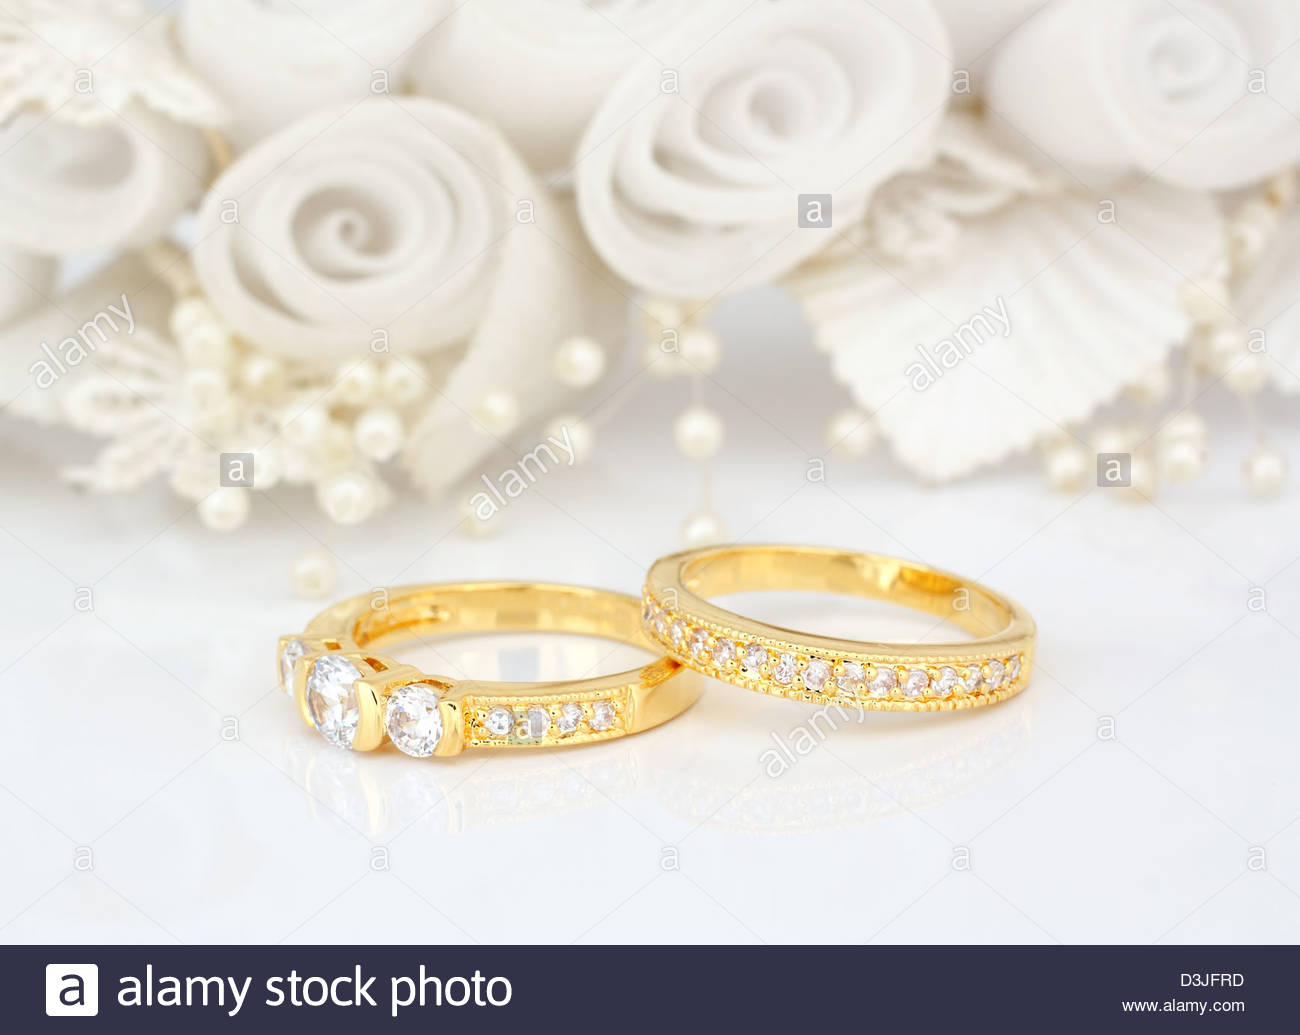 Gold wedding rings on flowers background Stock Photo 53882625   Alamy 1300x1035